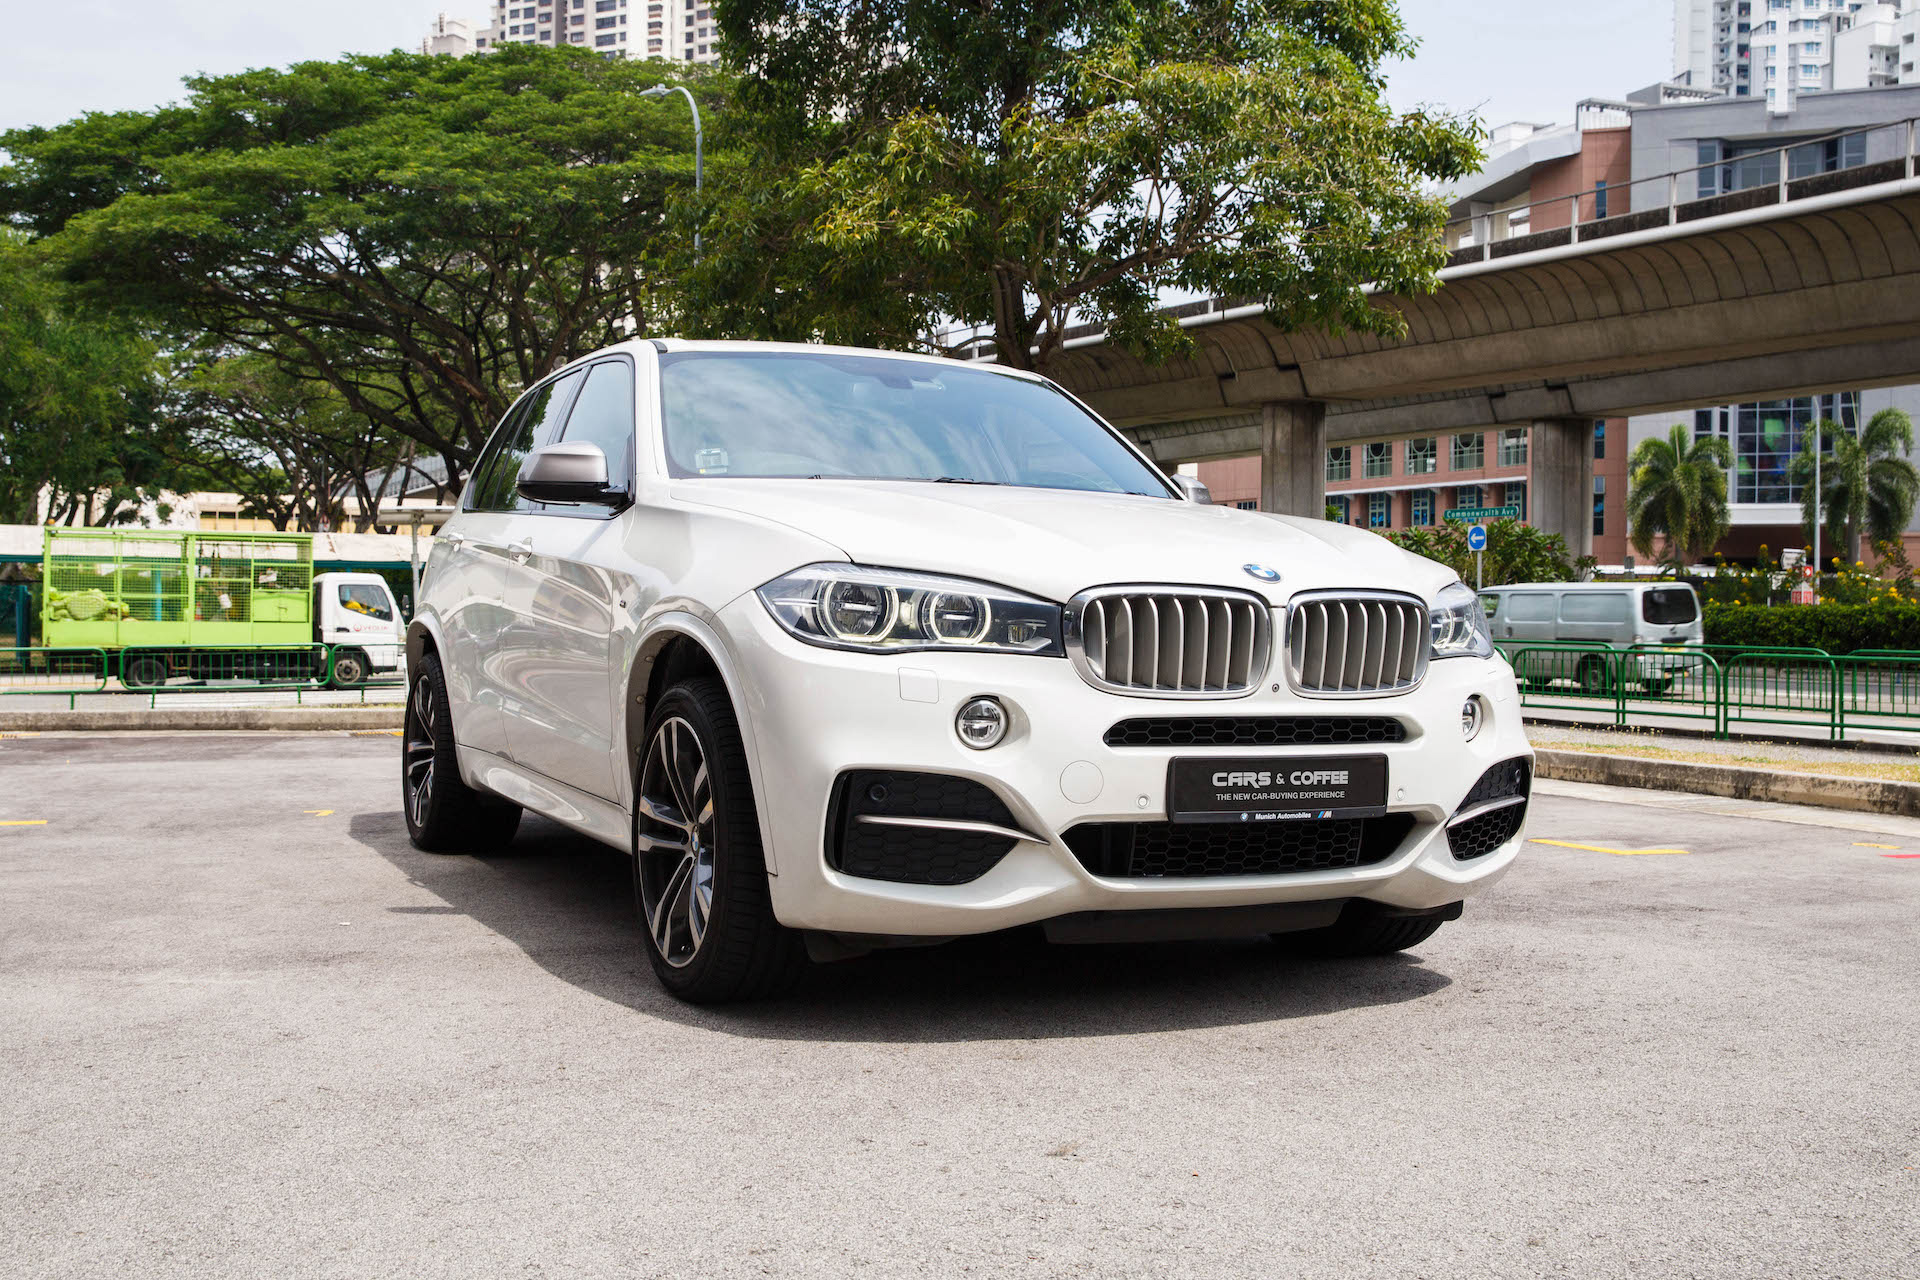 Certified Pre-Owned BMW X5 M50d   Cars and Coffee Singapore